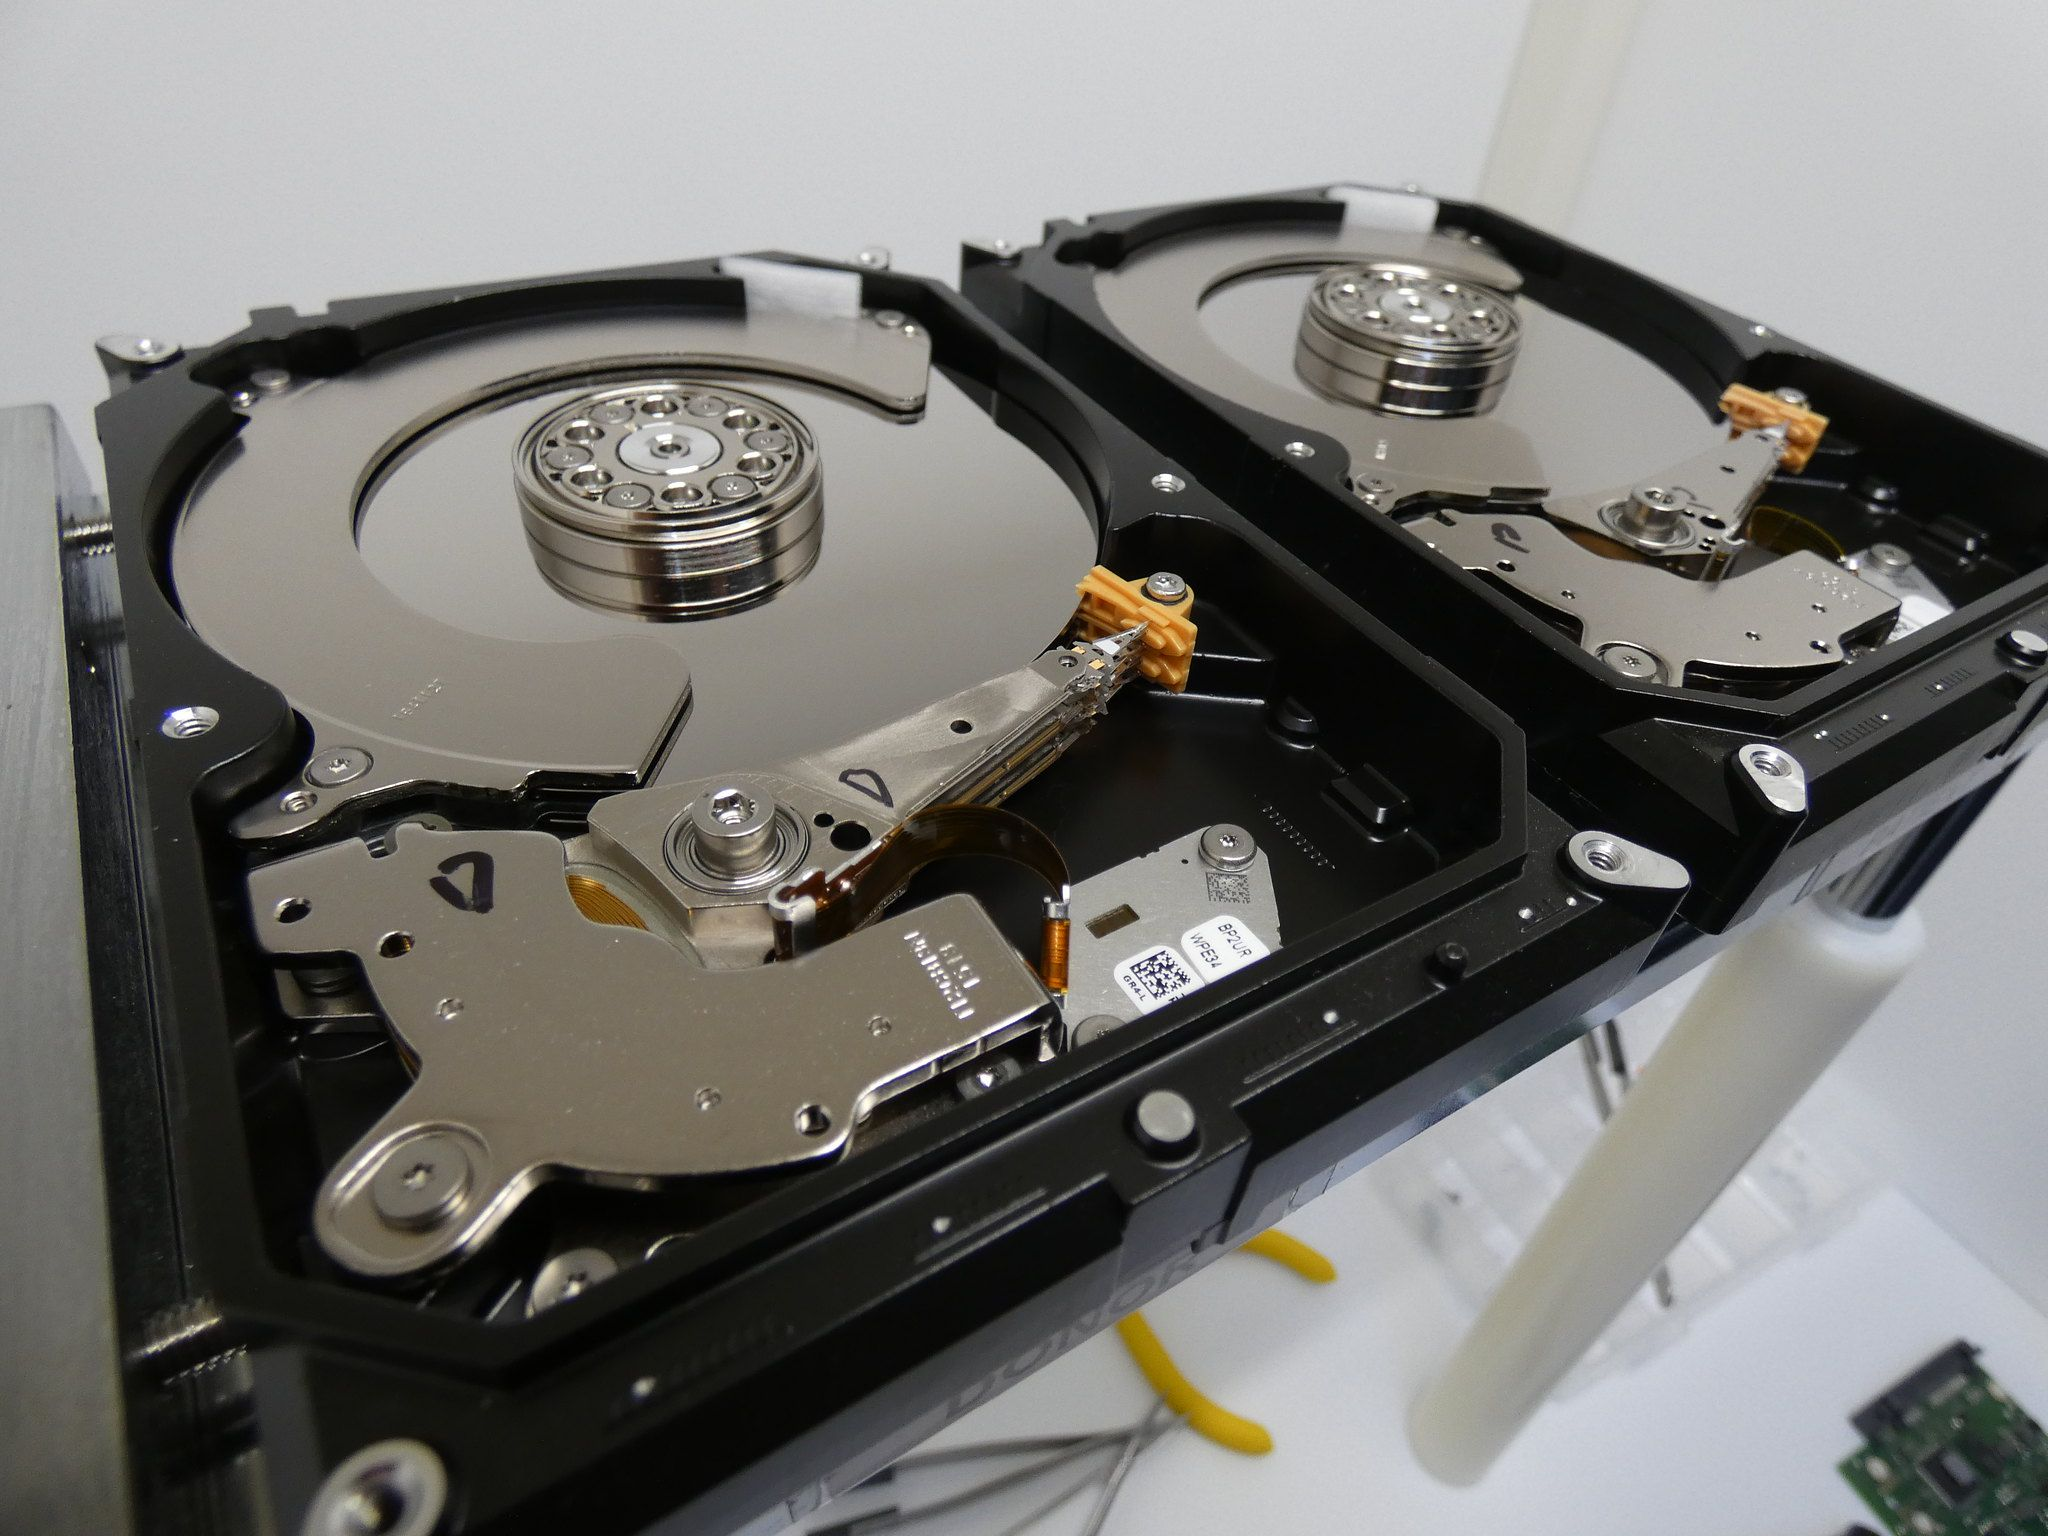 Seagate ST2000DM001 Data Recovery Liverpool, Merseyside